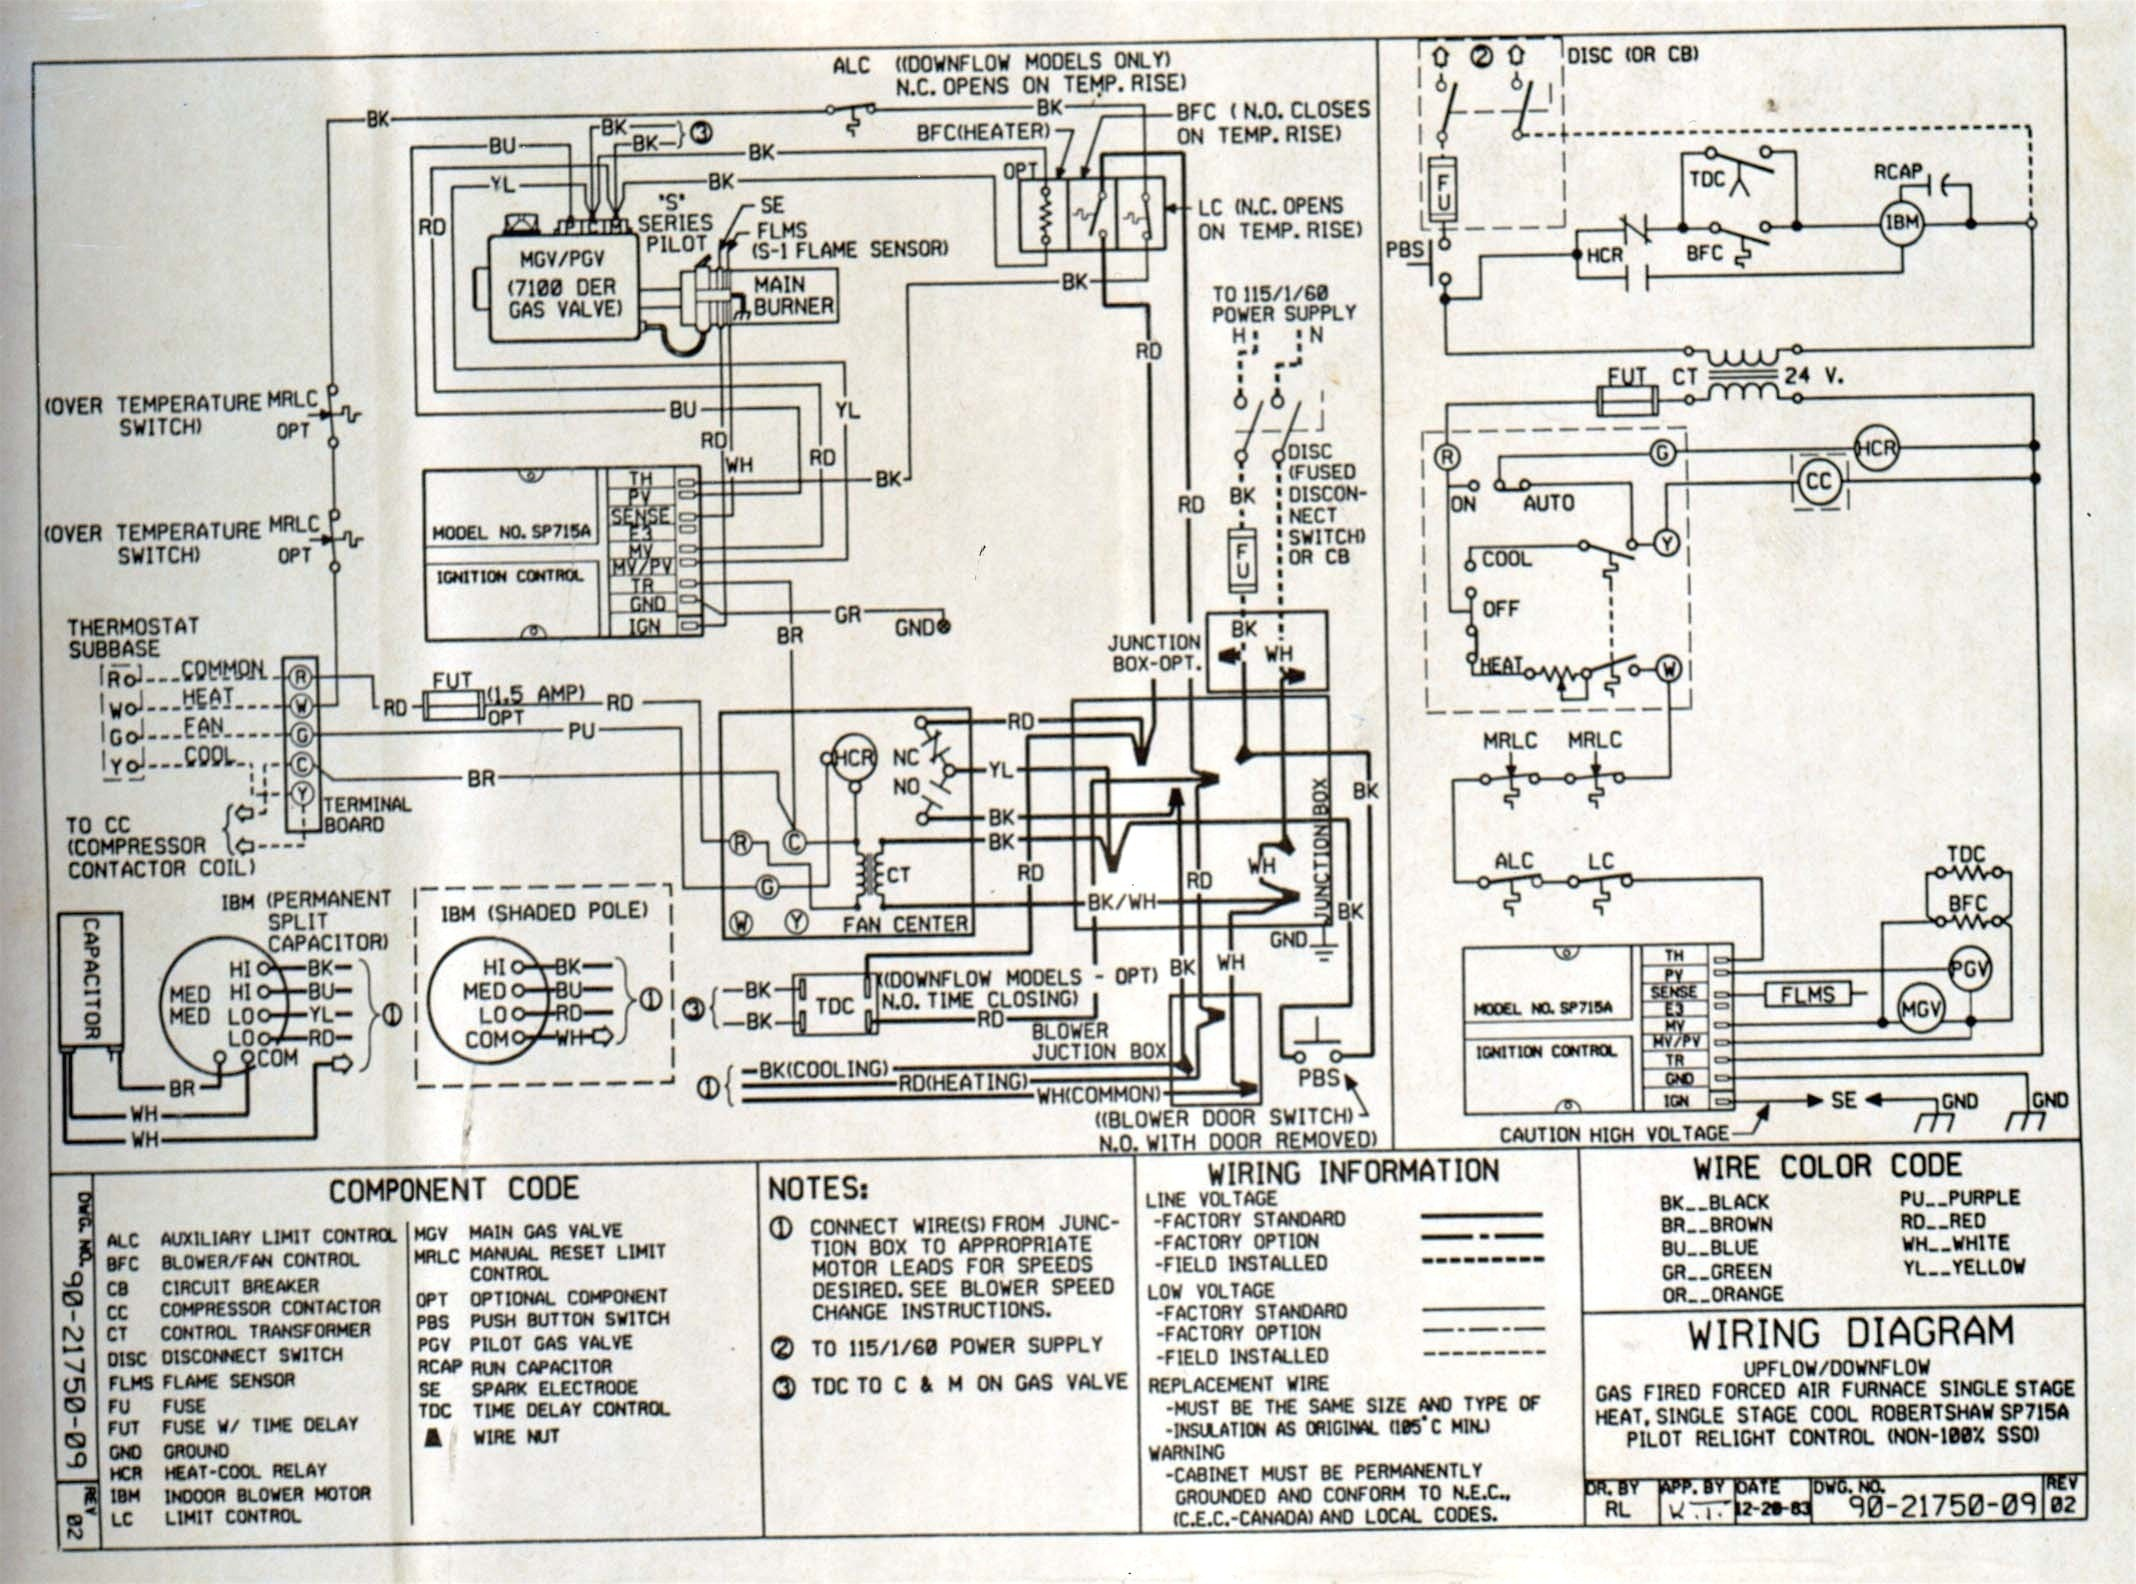 Mazda 3 Engine Parts Diagram Bk Wiring Diagram Another Blog About Wiring Diagram • Of Mazda 3 Engine Parts Diagram